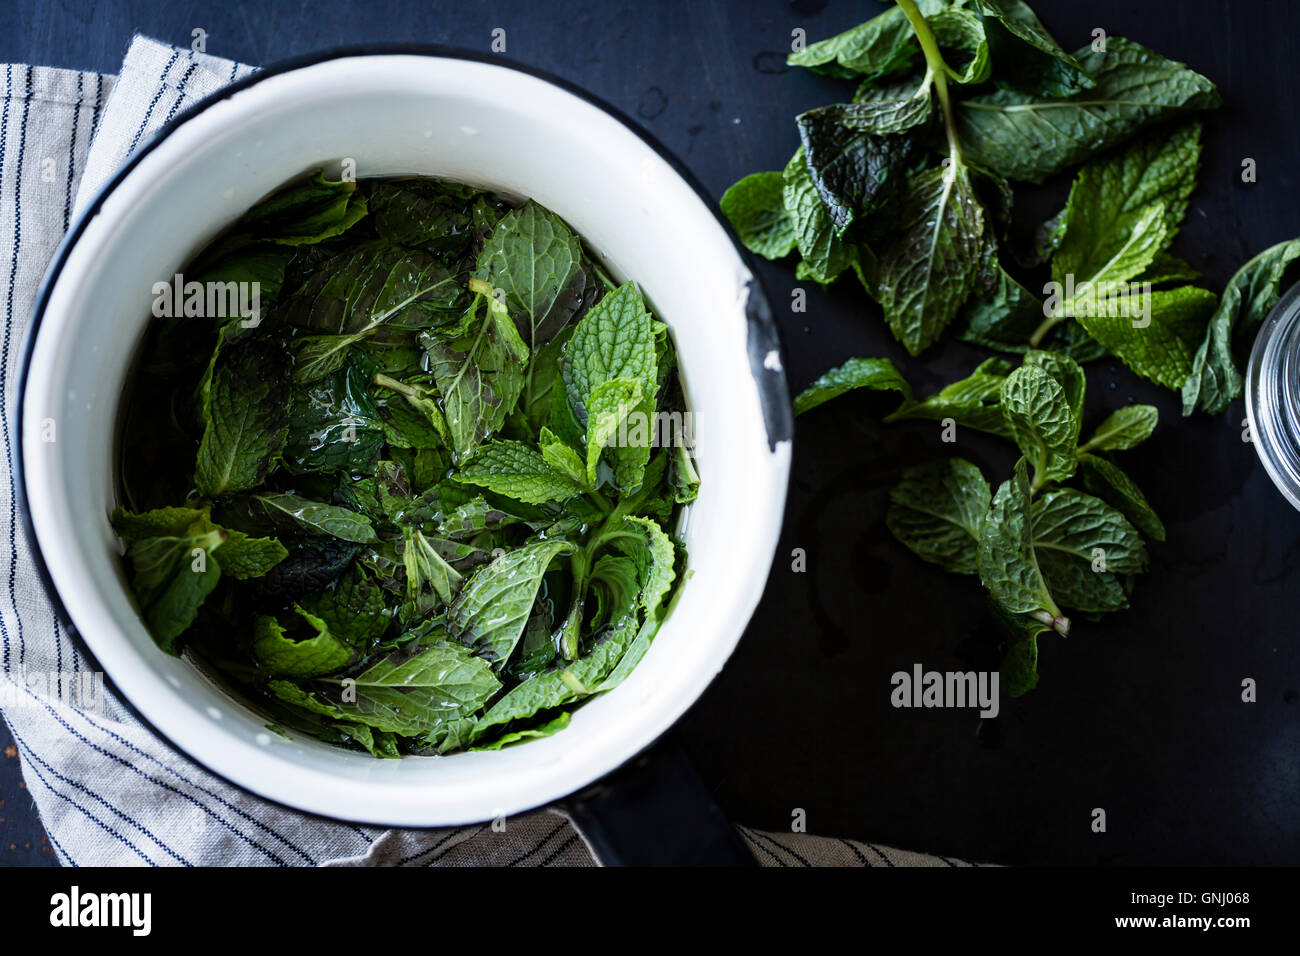 fresh mint leaves in a bowl - Stock Image